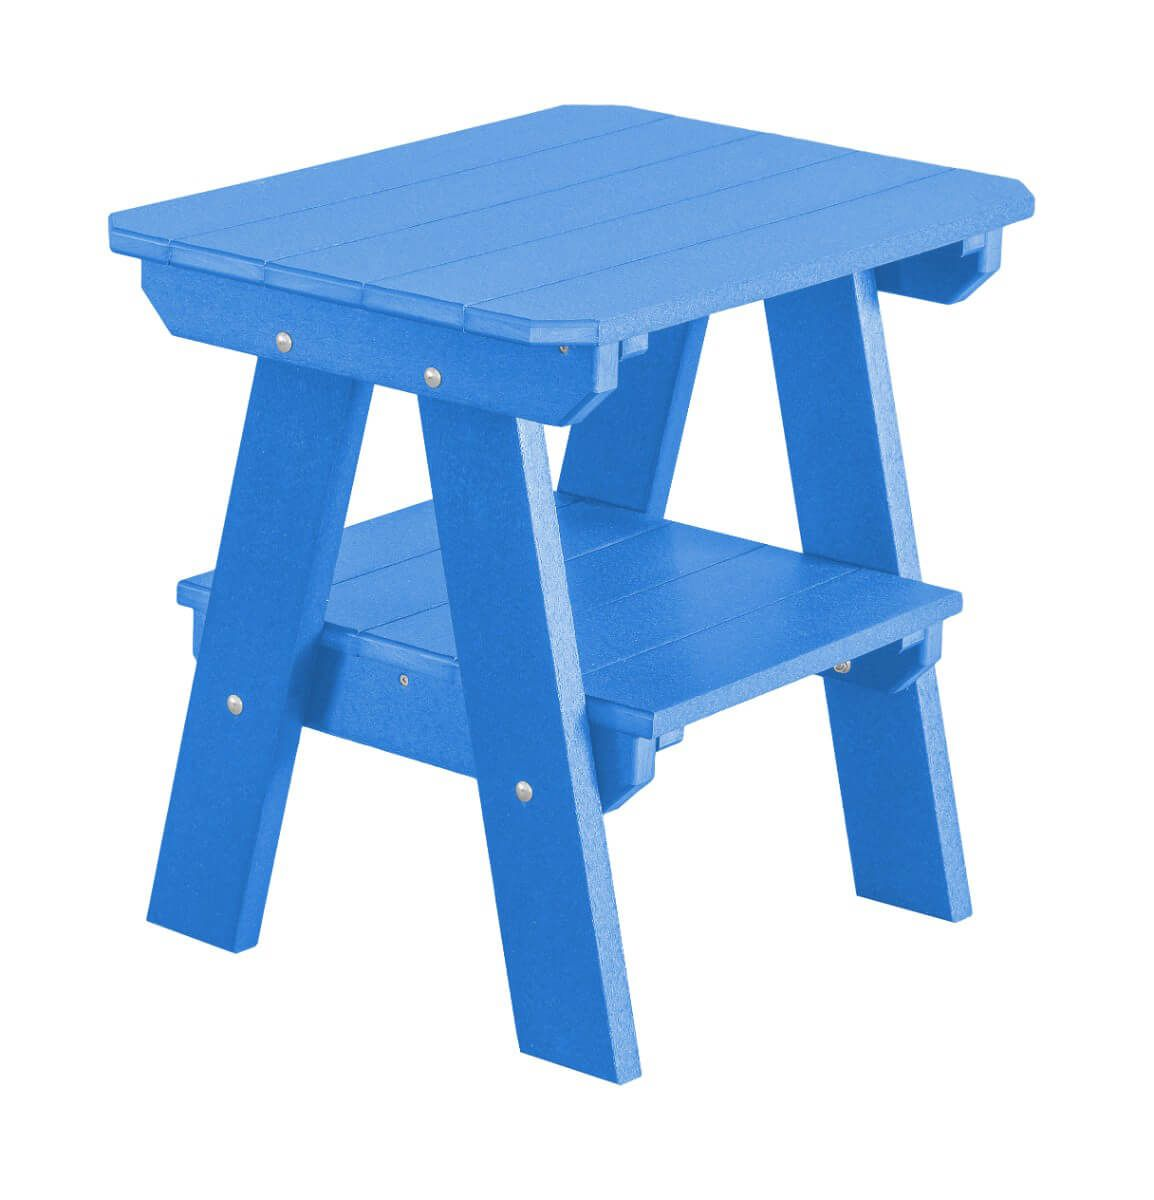 Blue Sidra Outdoor End Table